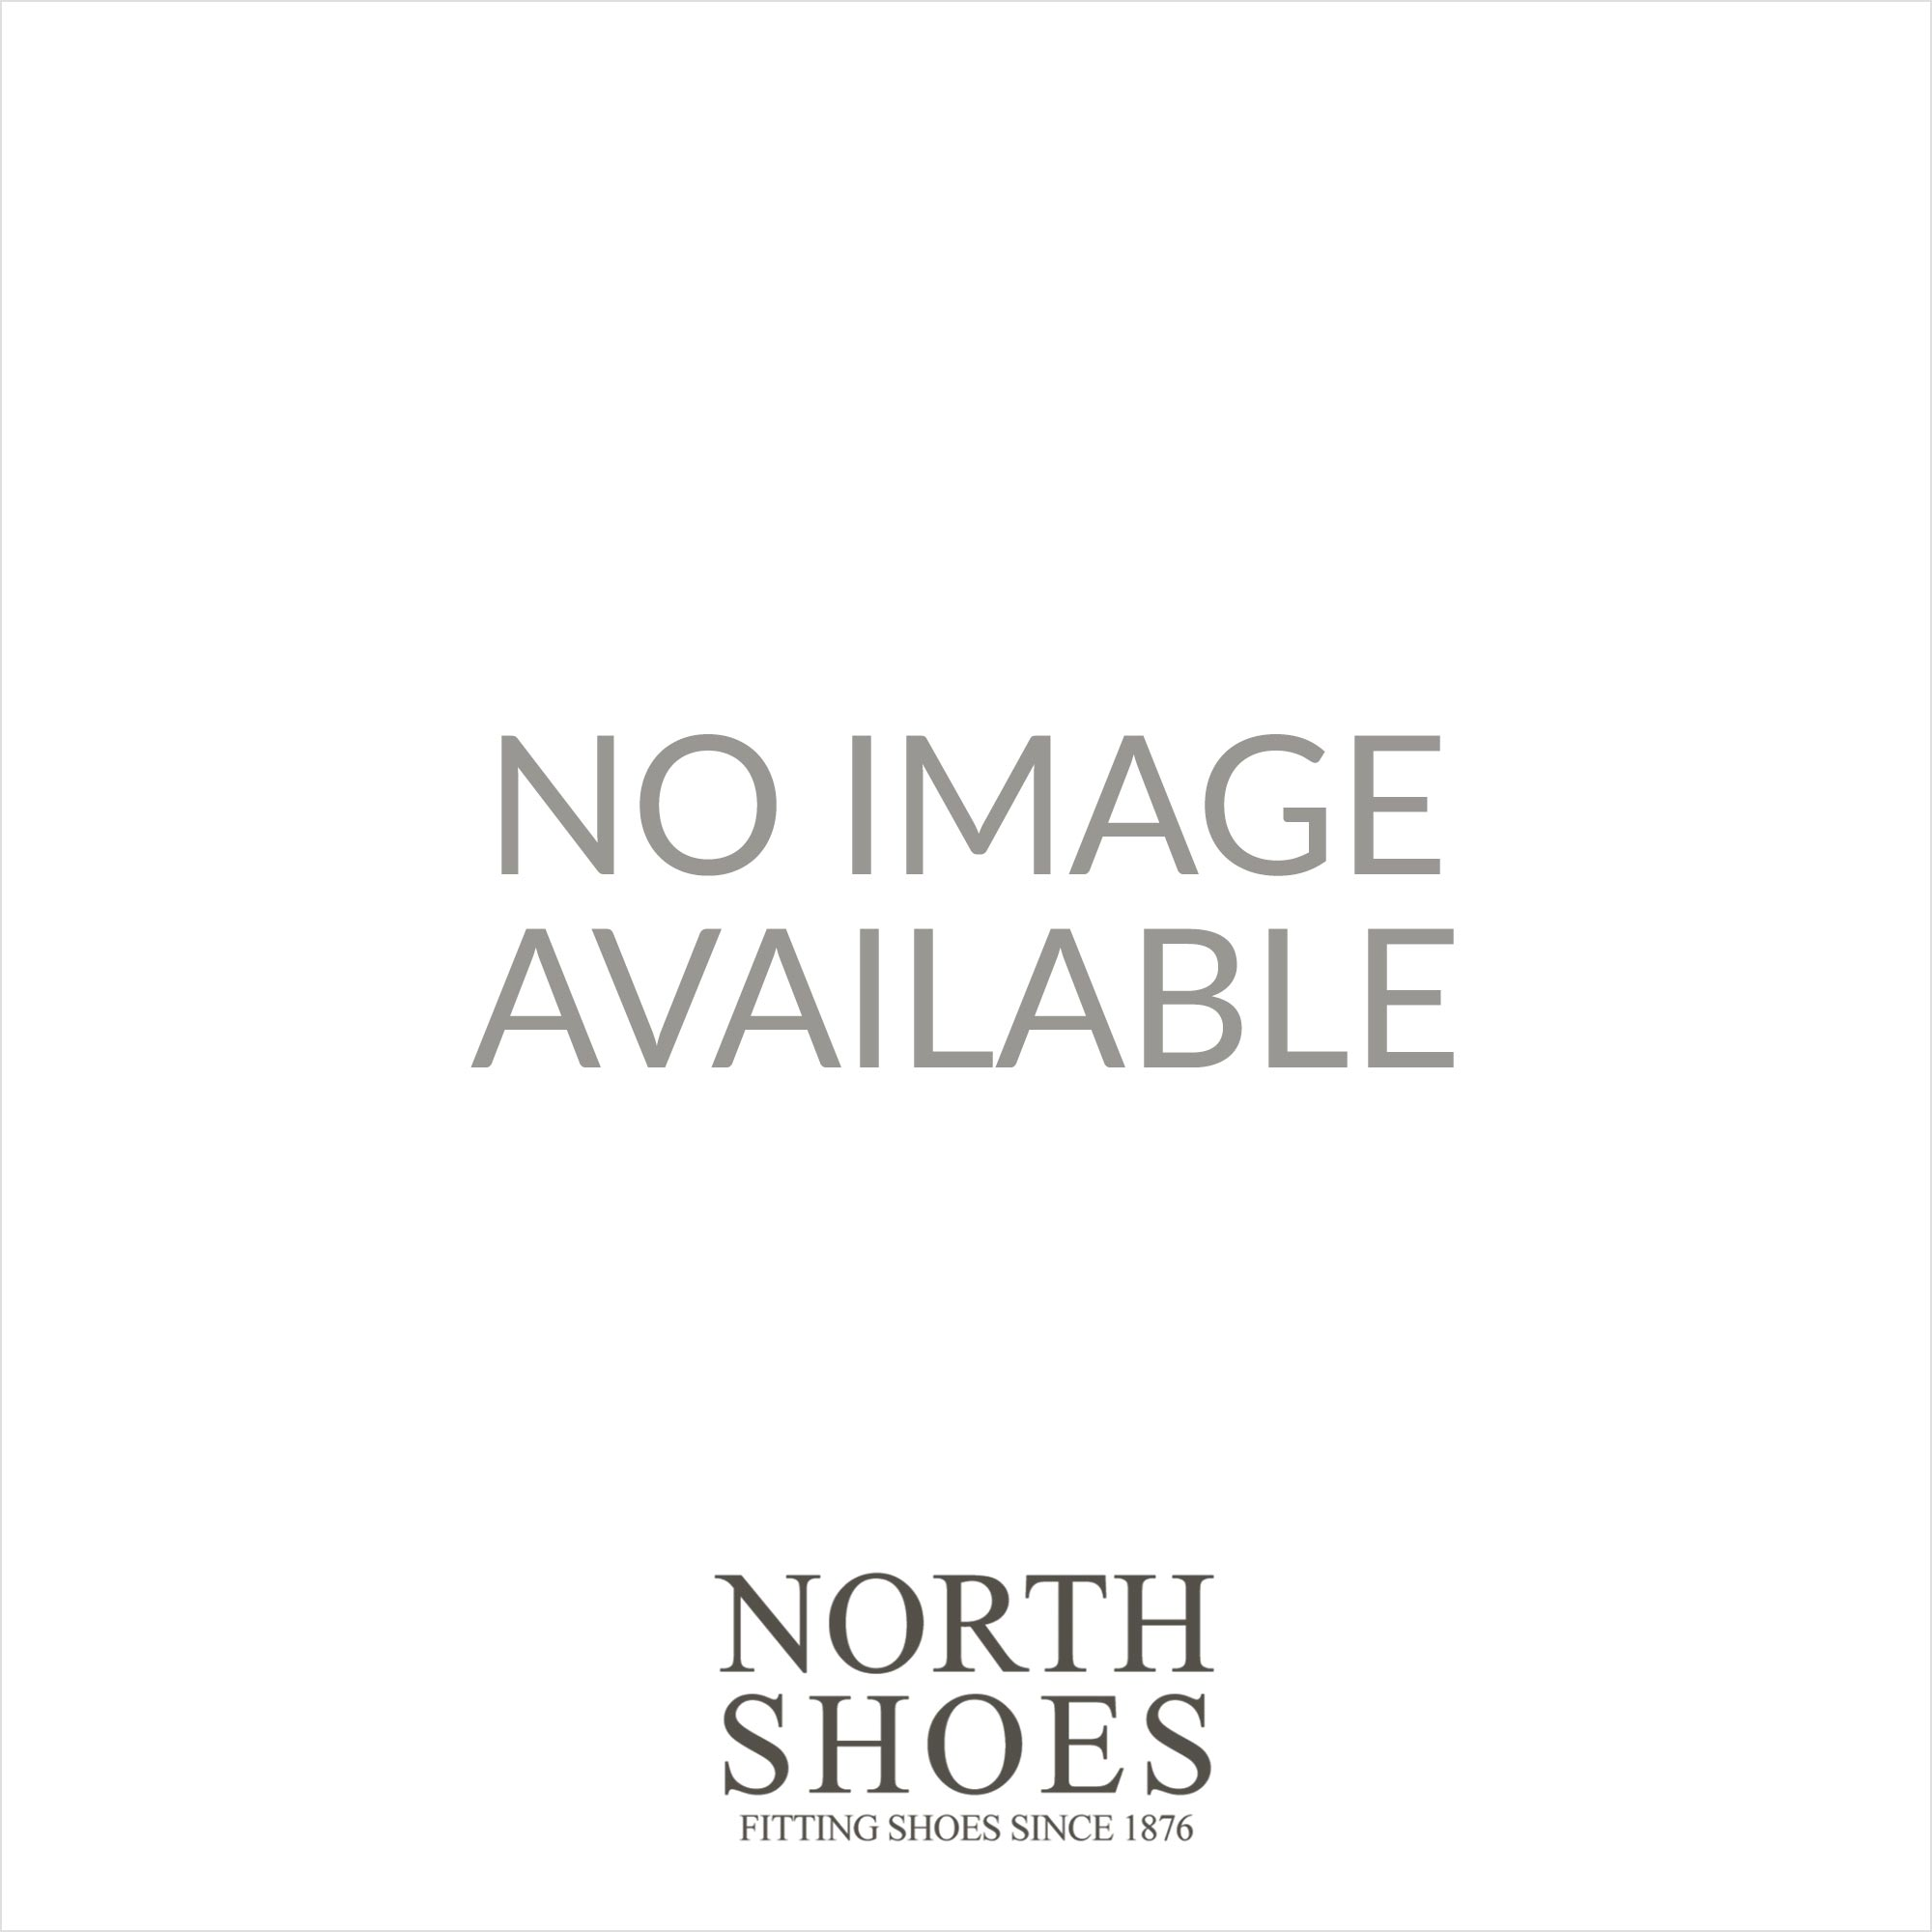 ff6bd543a1c5 ... Clarks Sail Beach Silver Leather Womens Buckle Strapy Jewelled Sandal  ...